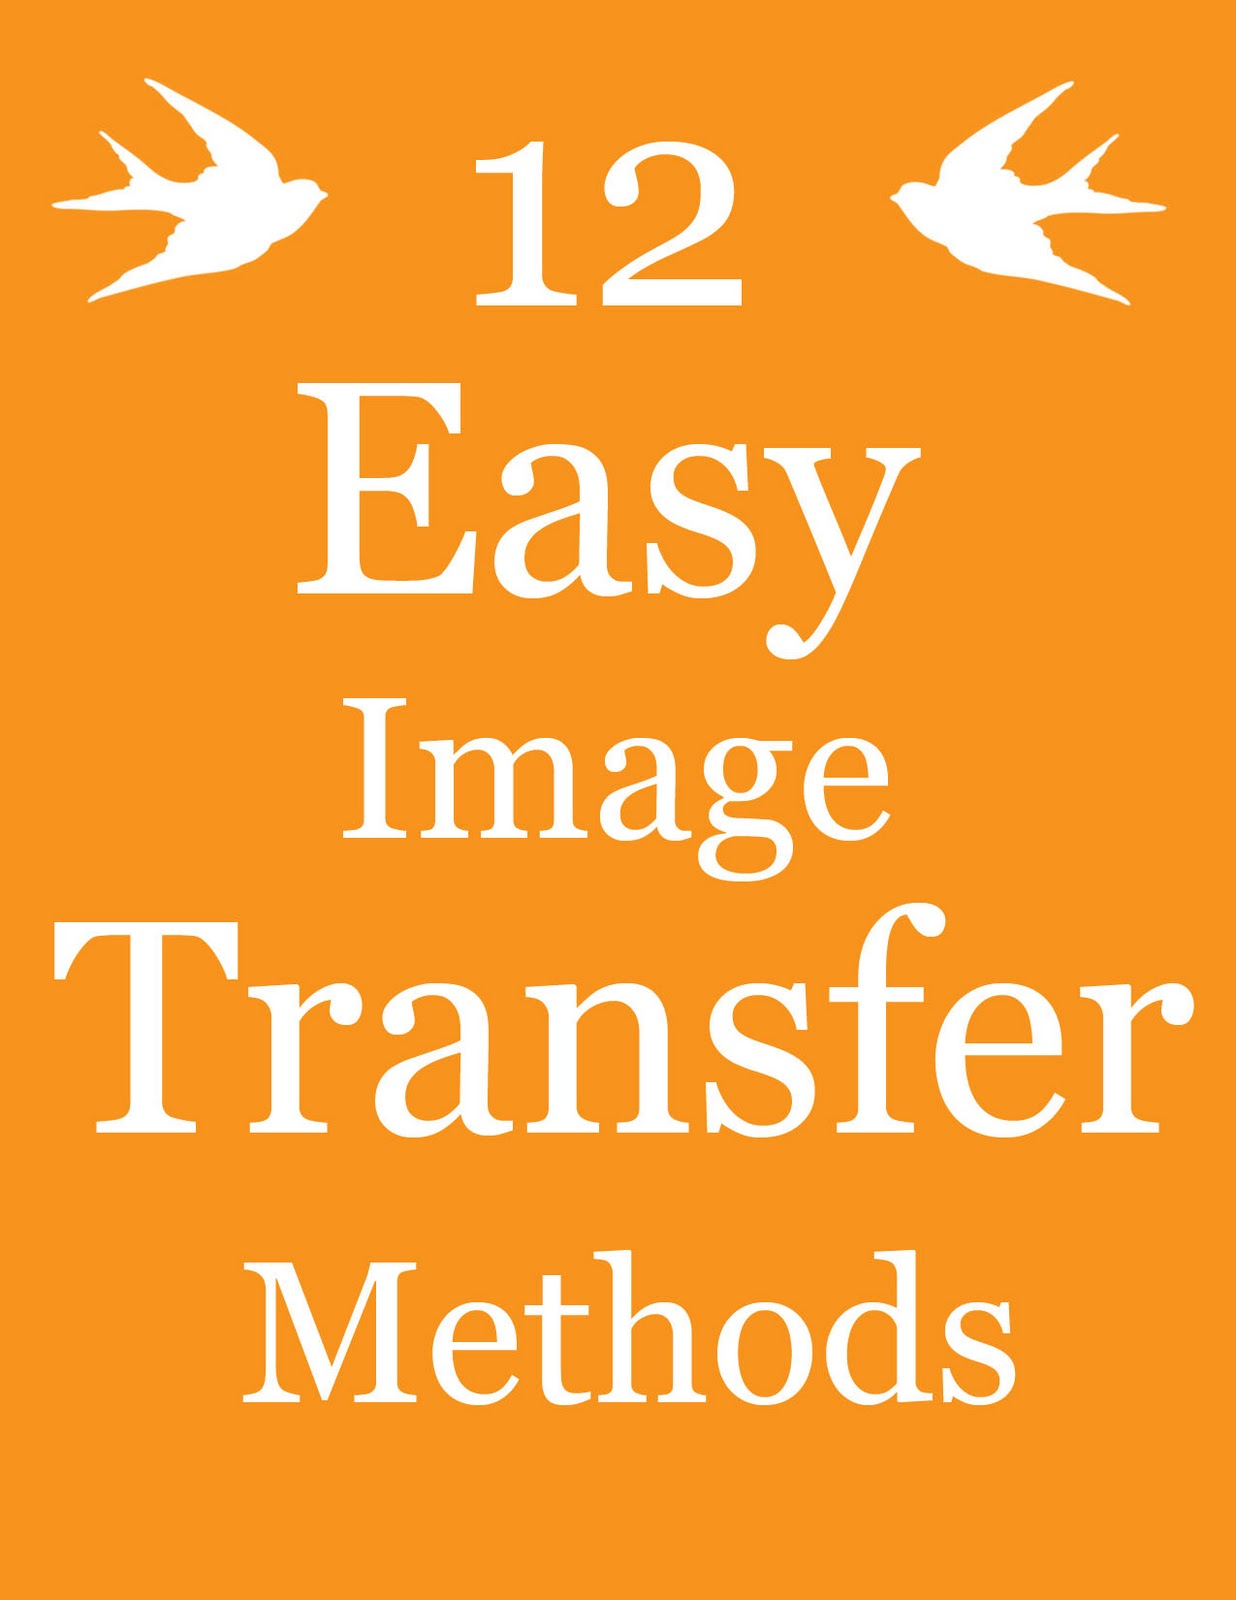 12 Easy Image Transfer Methods For Diy Projects The Graphics Fairy